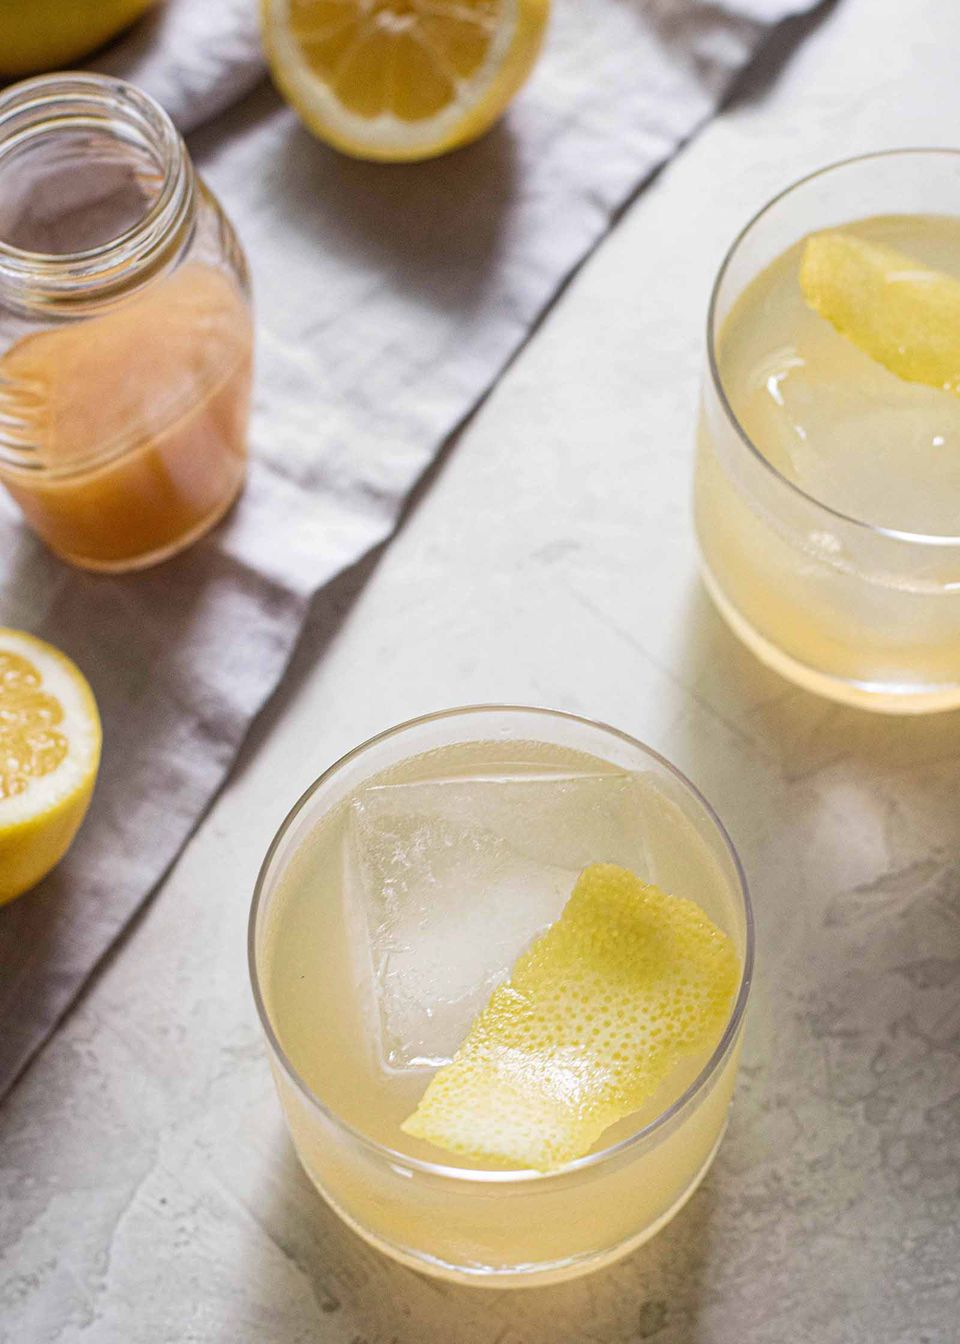 Bee's Knees cocktail drink recipe with honey, gin, and lemon